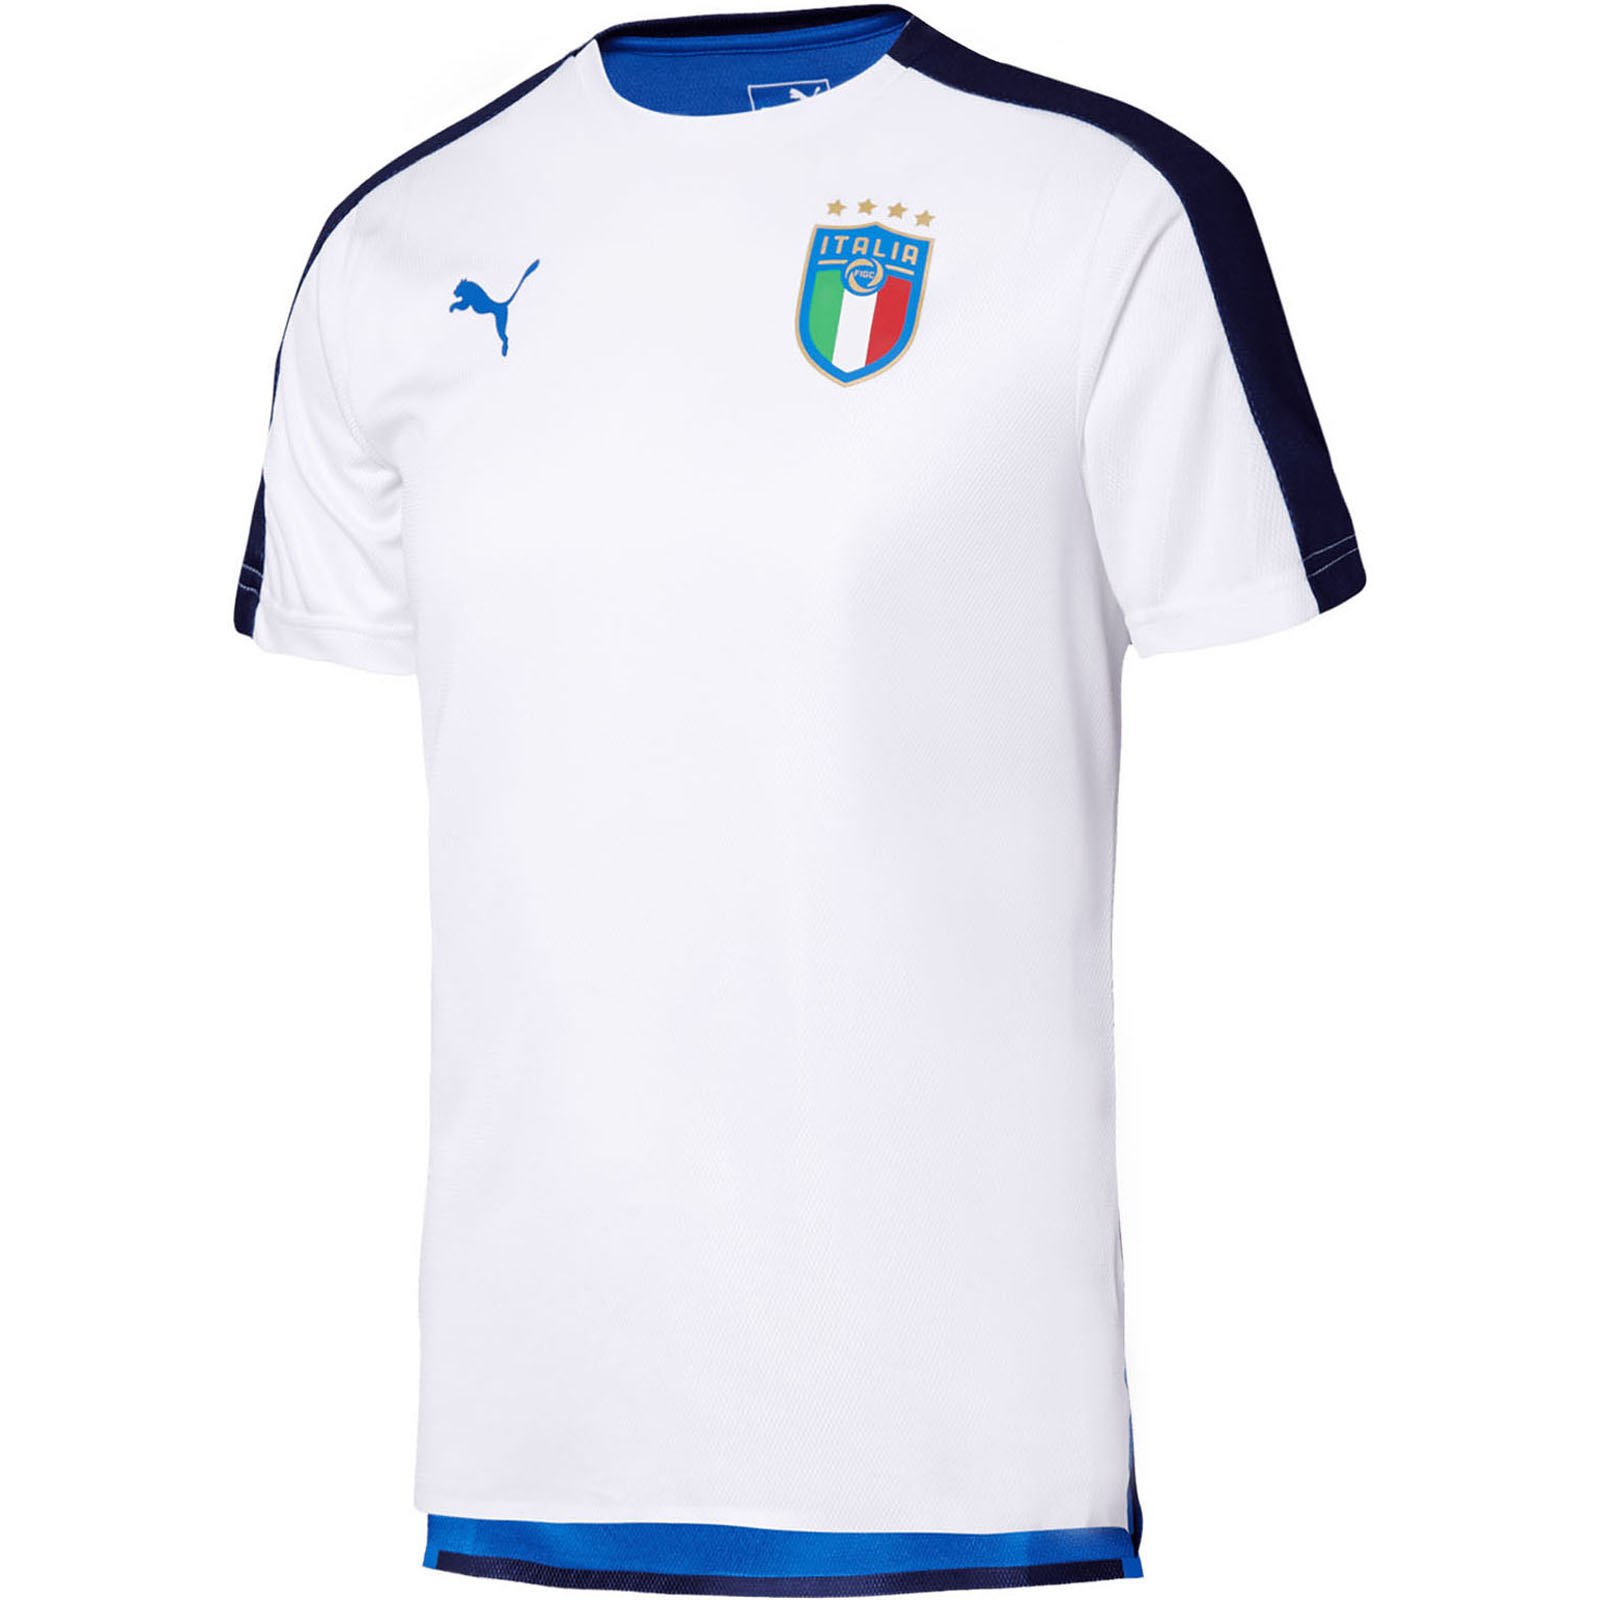 T-Shirt PUMA 75231502 sports and entertainment for men oudiniao sports and leisure shoes